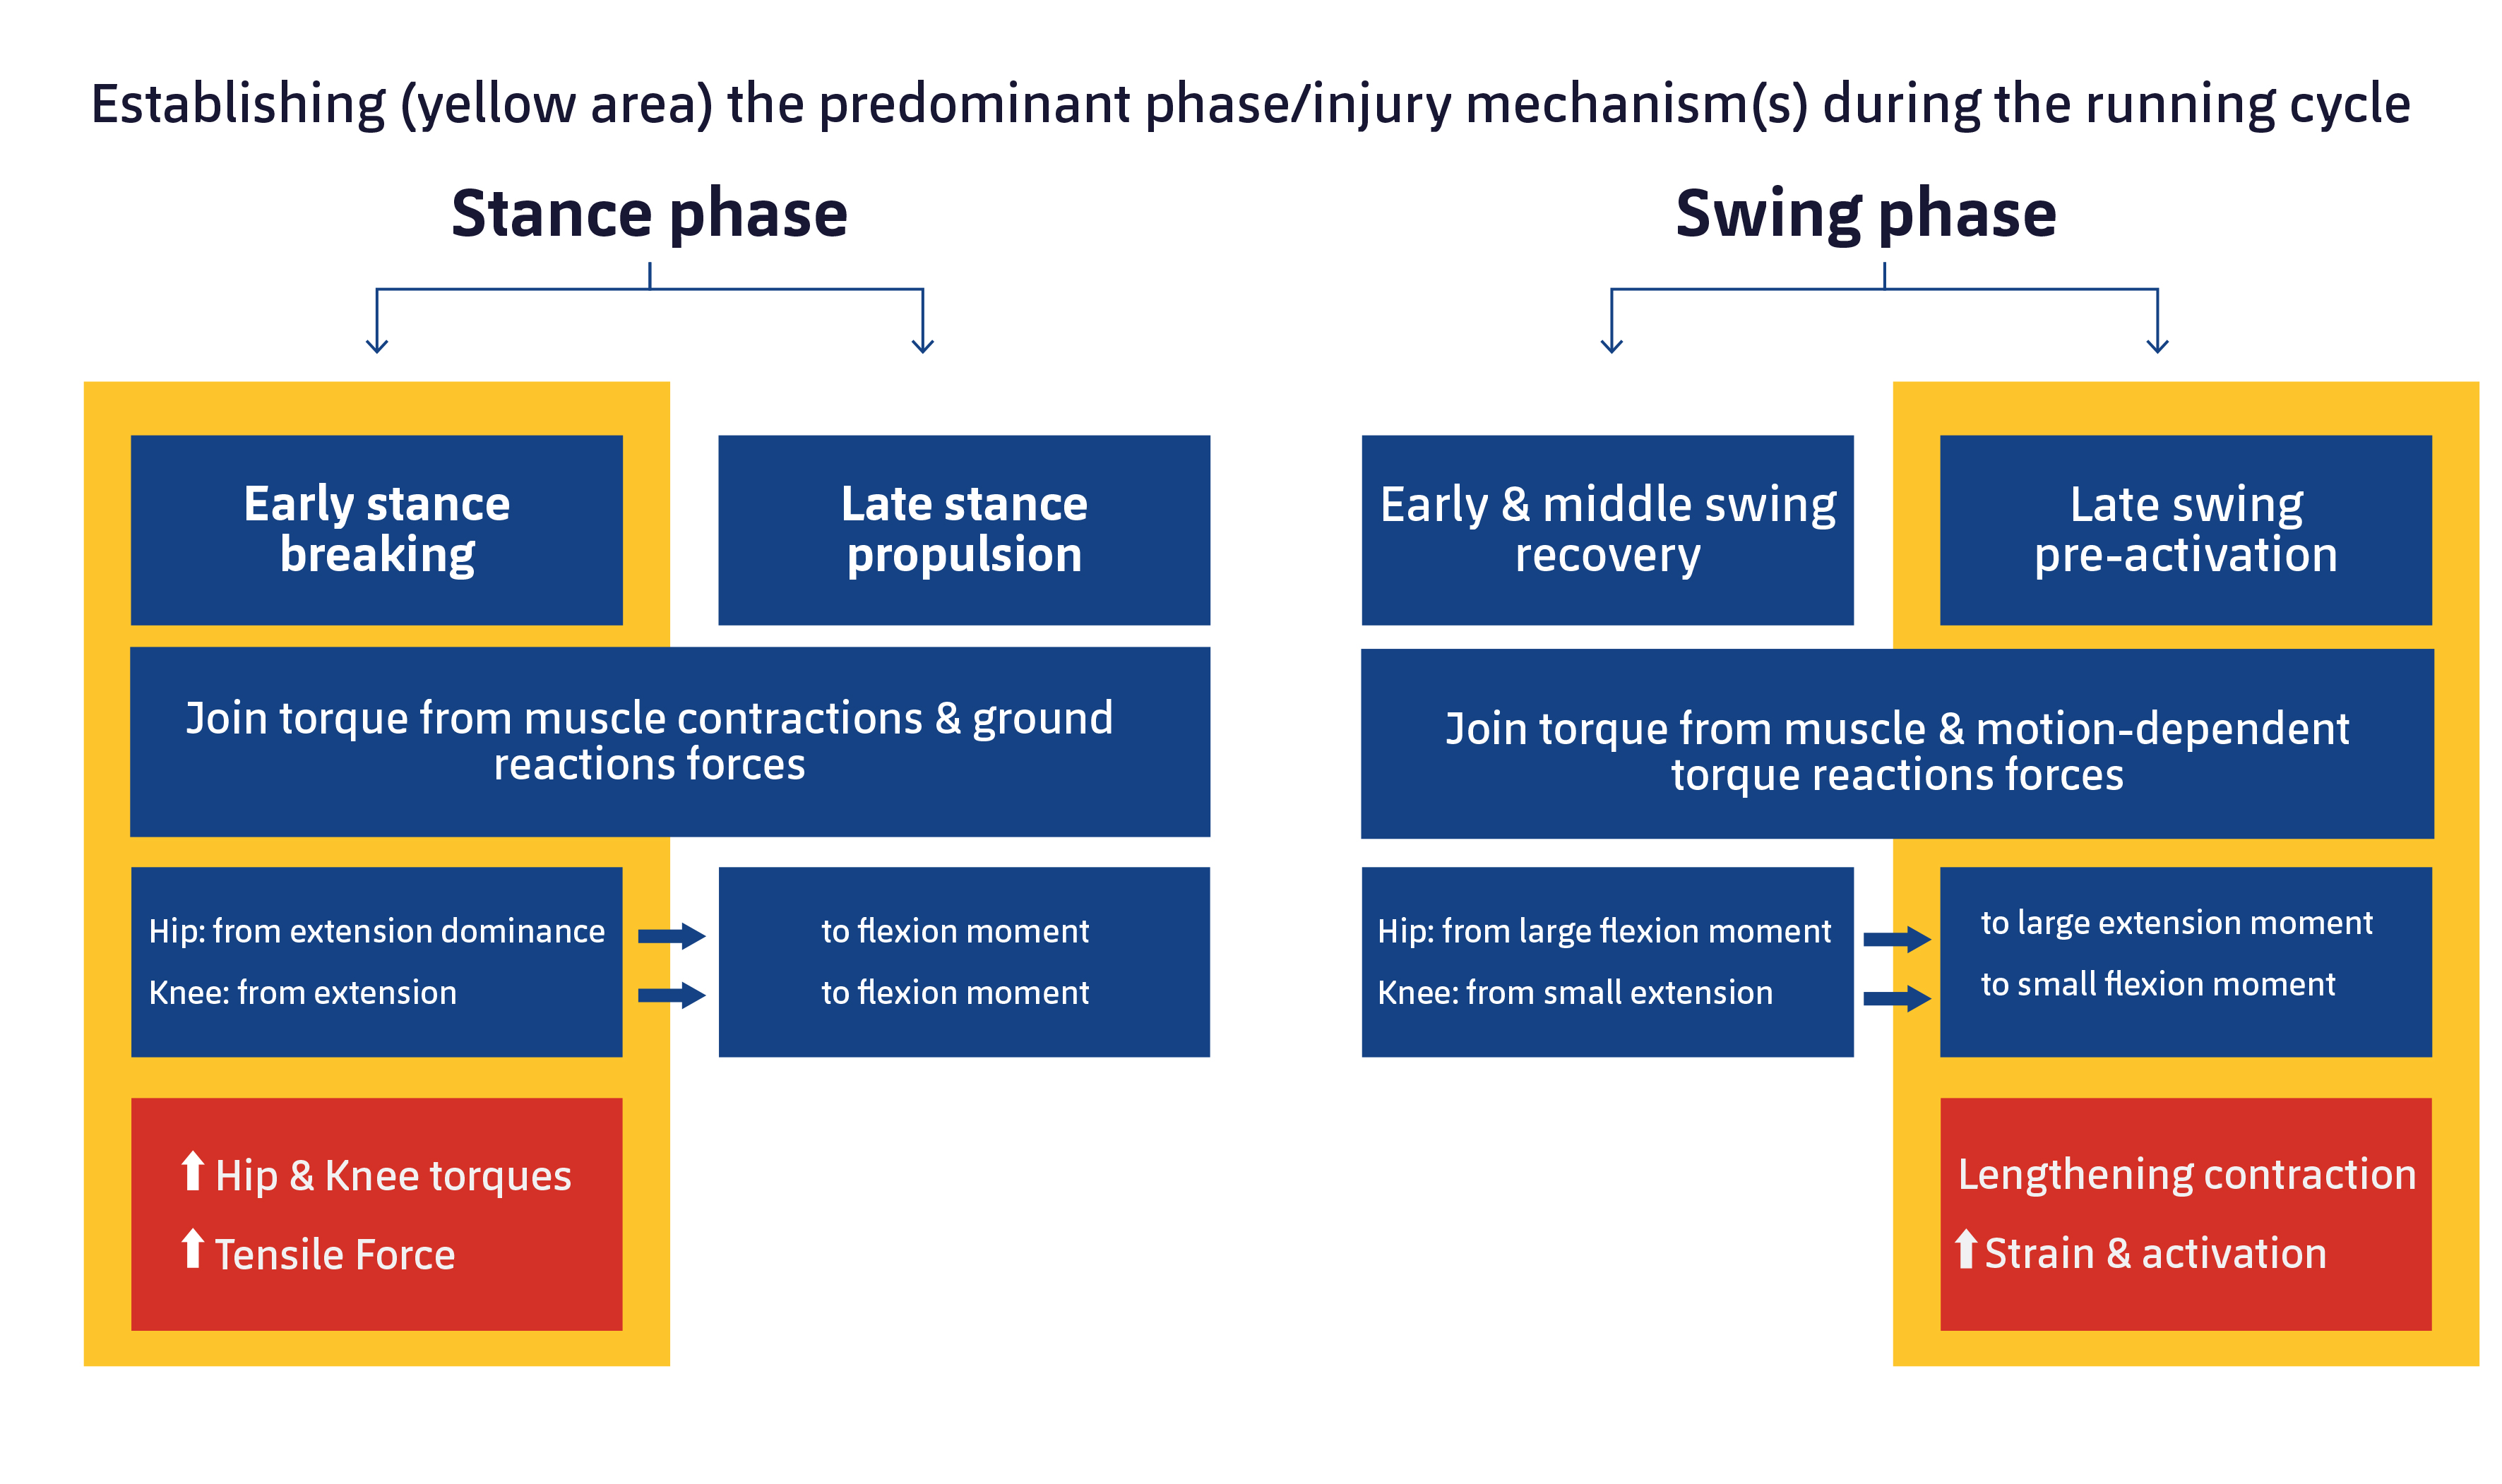 Figure 2. Characteristics of mechanics and muscle activation in the main phases in which hamstring injury occurs. Adapted from Huygaerts S, et al. 2020.